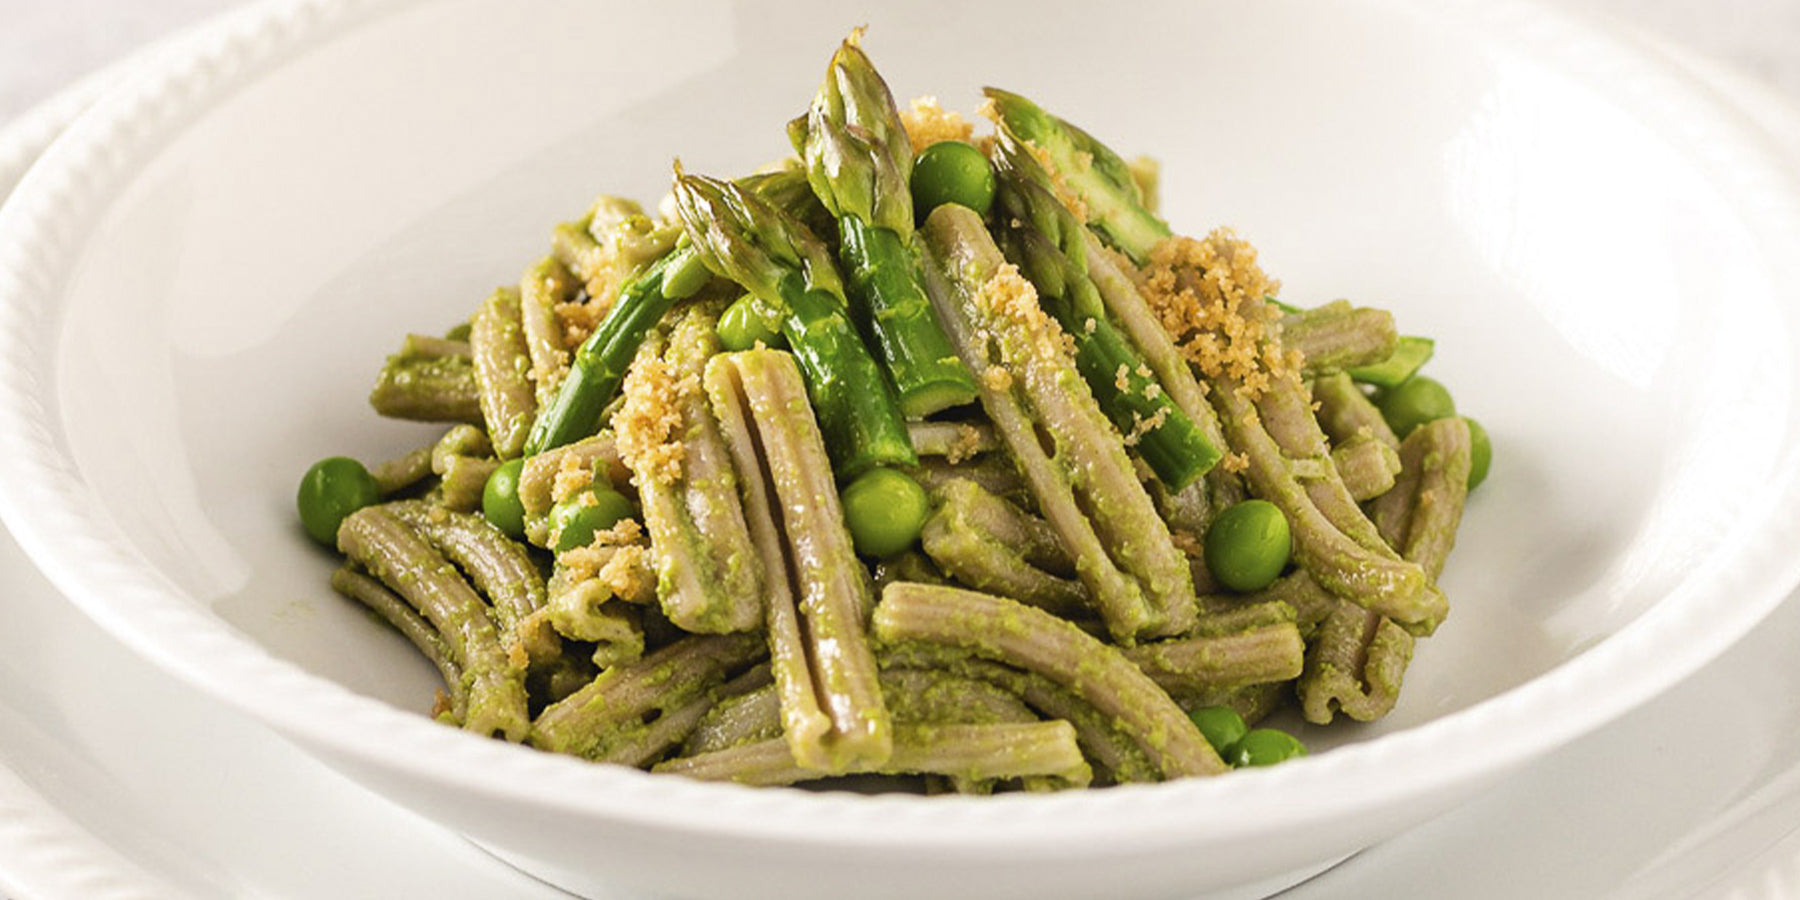 Sorghum Casarecce with Peas, Asparagus and Garlic Breadcrumbs